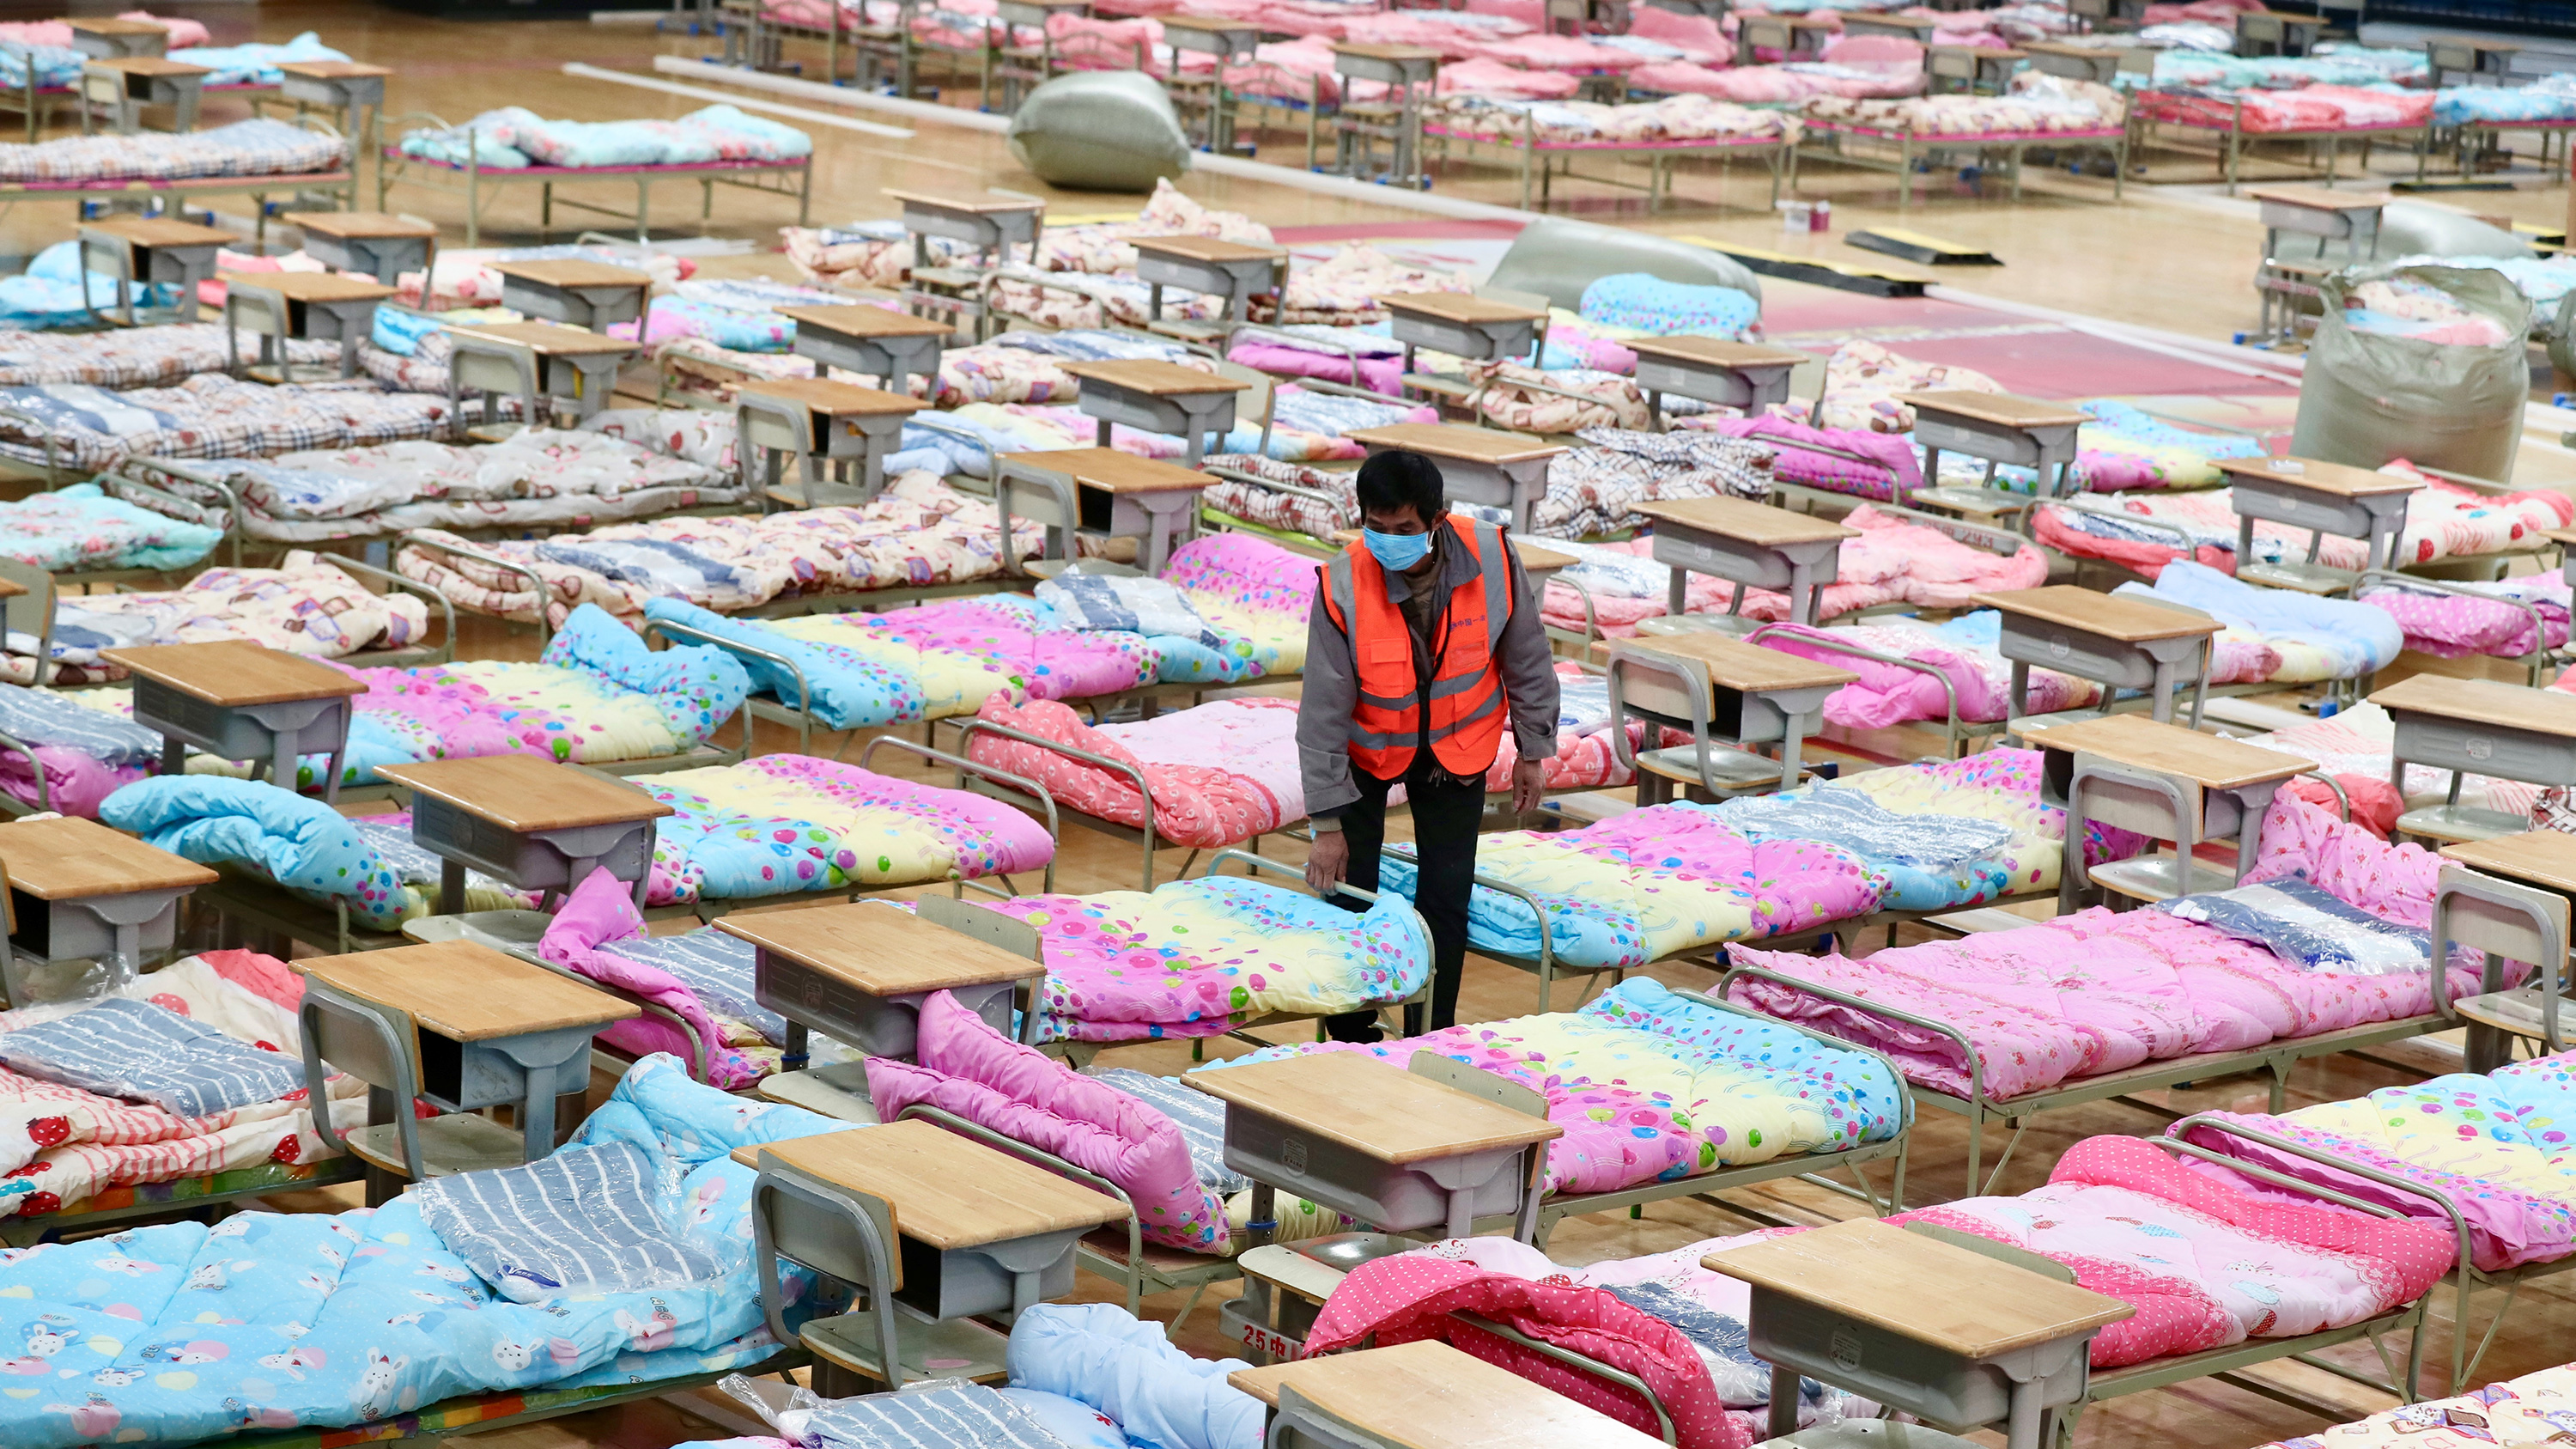 The photo shows a worker adjusting the covers on a bed in a large space filled with hundreds of cot-sized beds covered with white and pink and blue bedding.